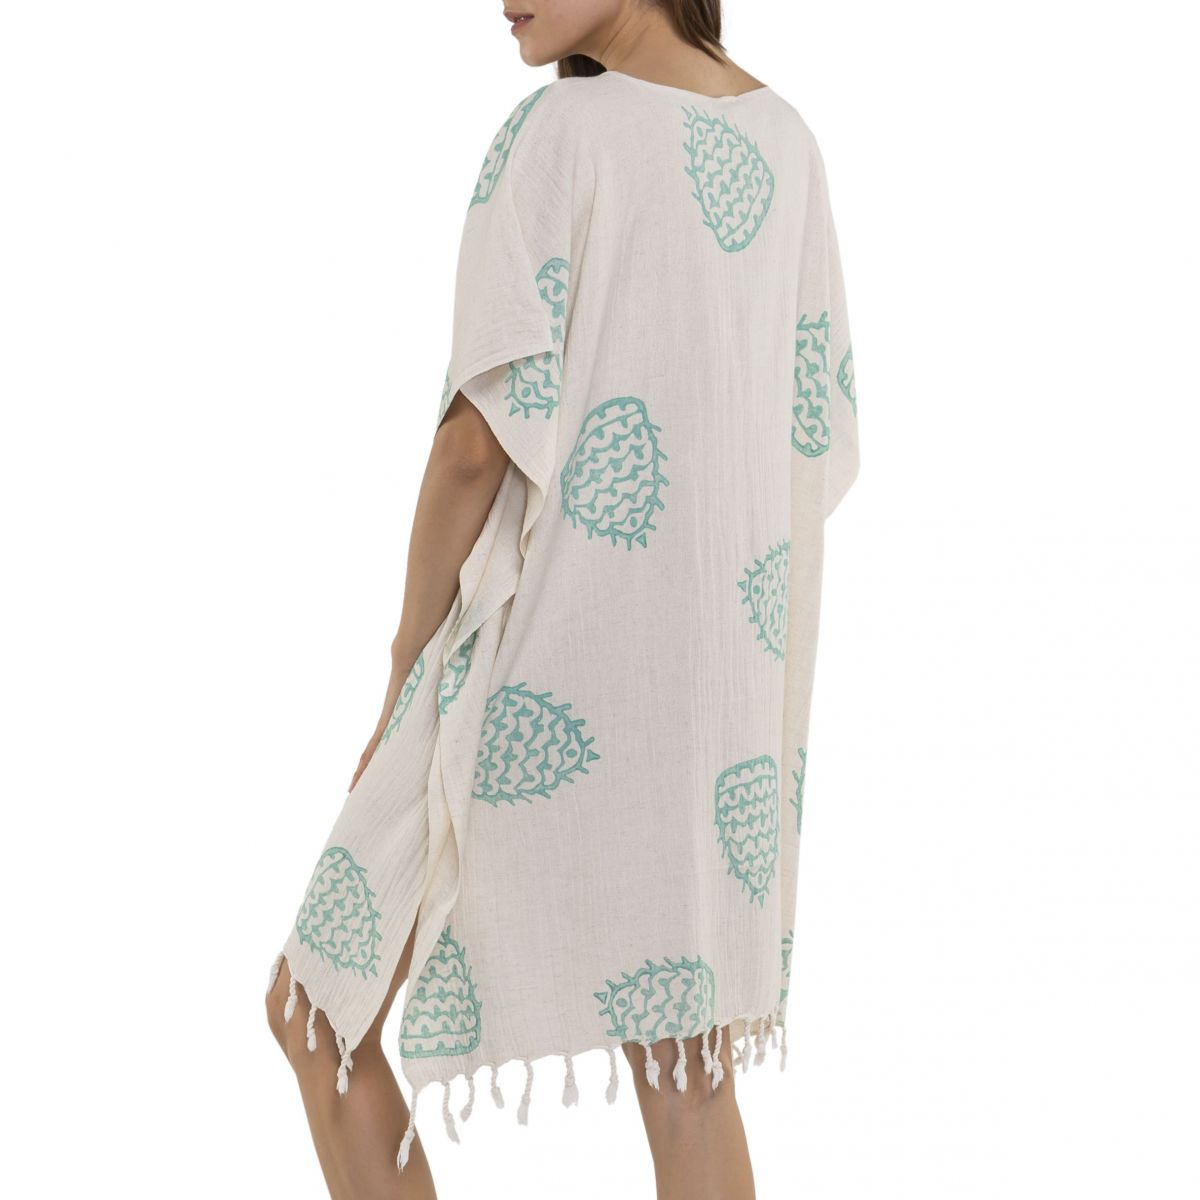 Tunic - Hand Printed 05 / Mint